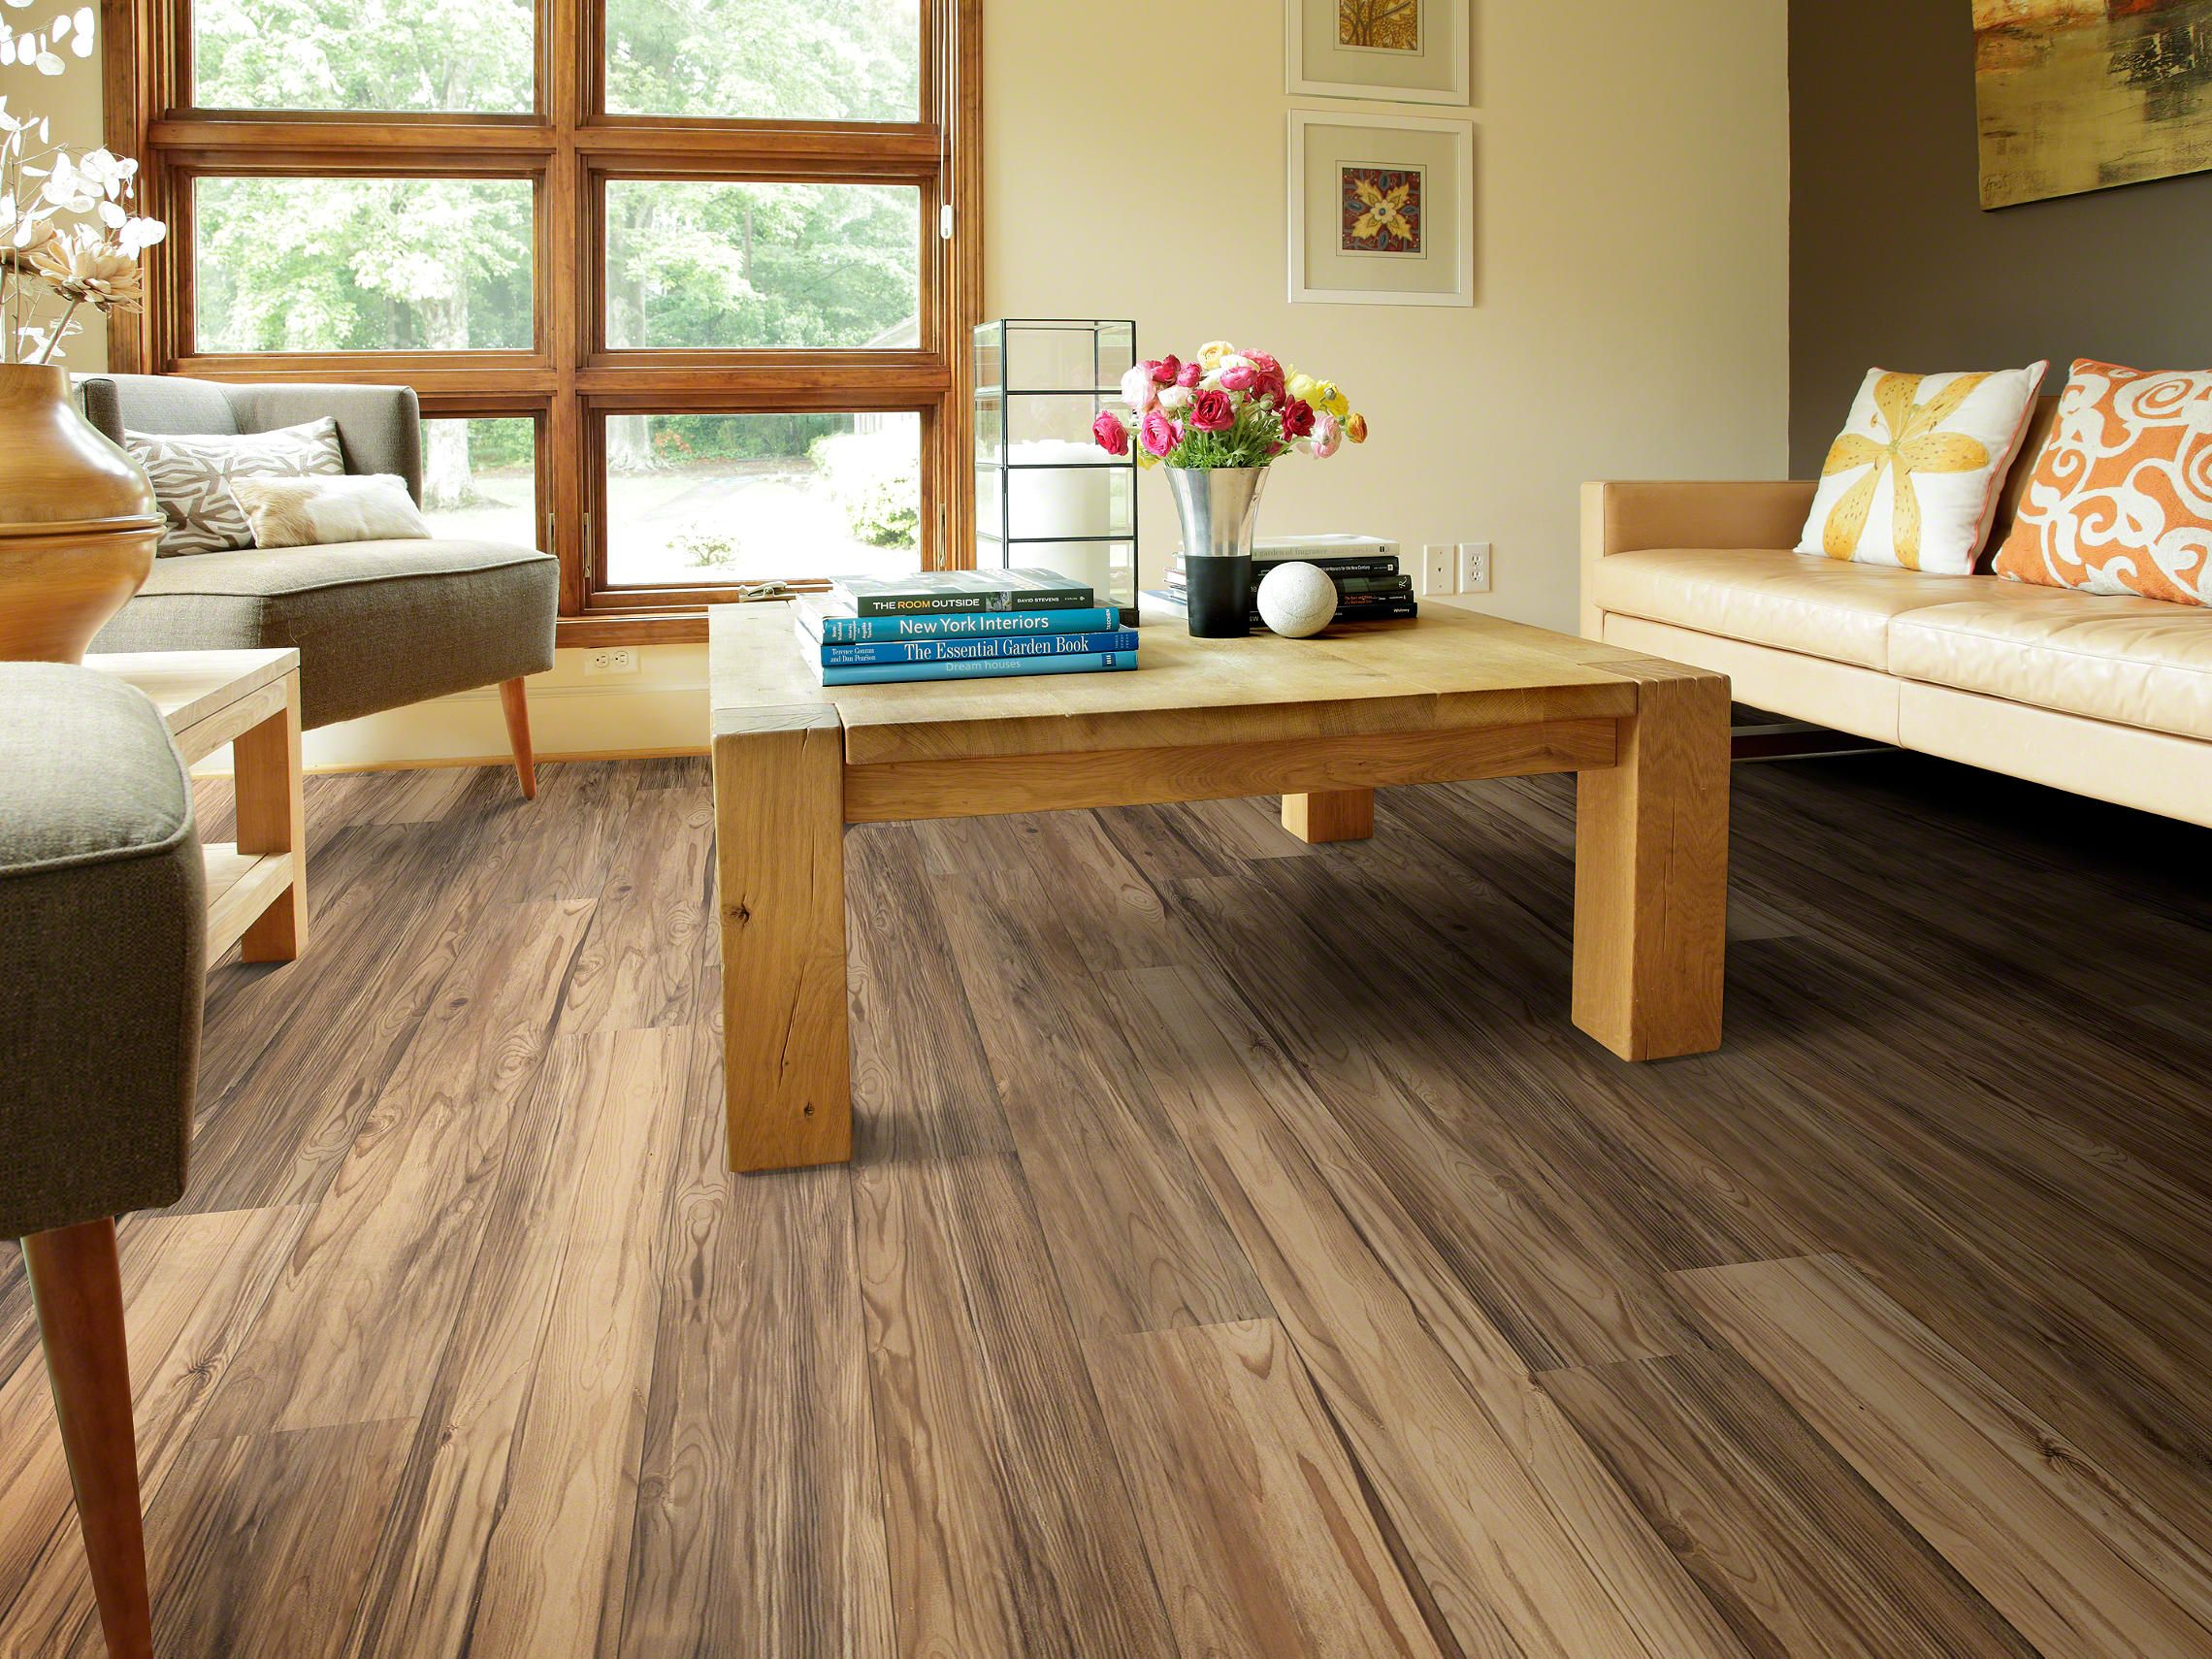 Luxury vinyl flooring bathroom - Shaw S Alto Plank Caplone Resilient Vinyl Flooring Is The Modern Choice For Beautiful Durable Floors Wide Variety Of Patterns Colors